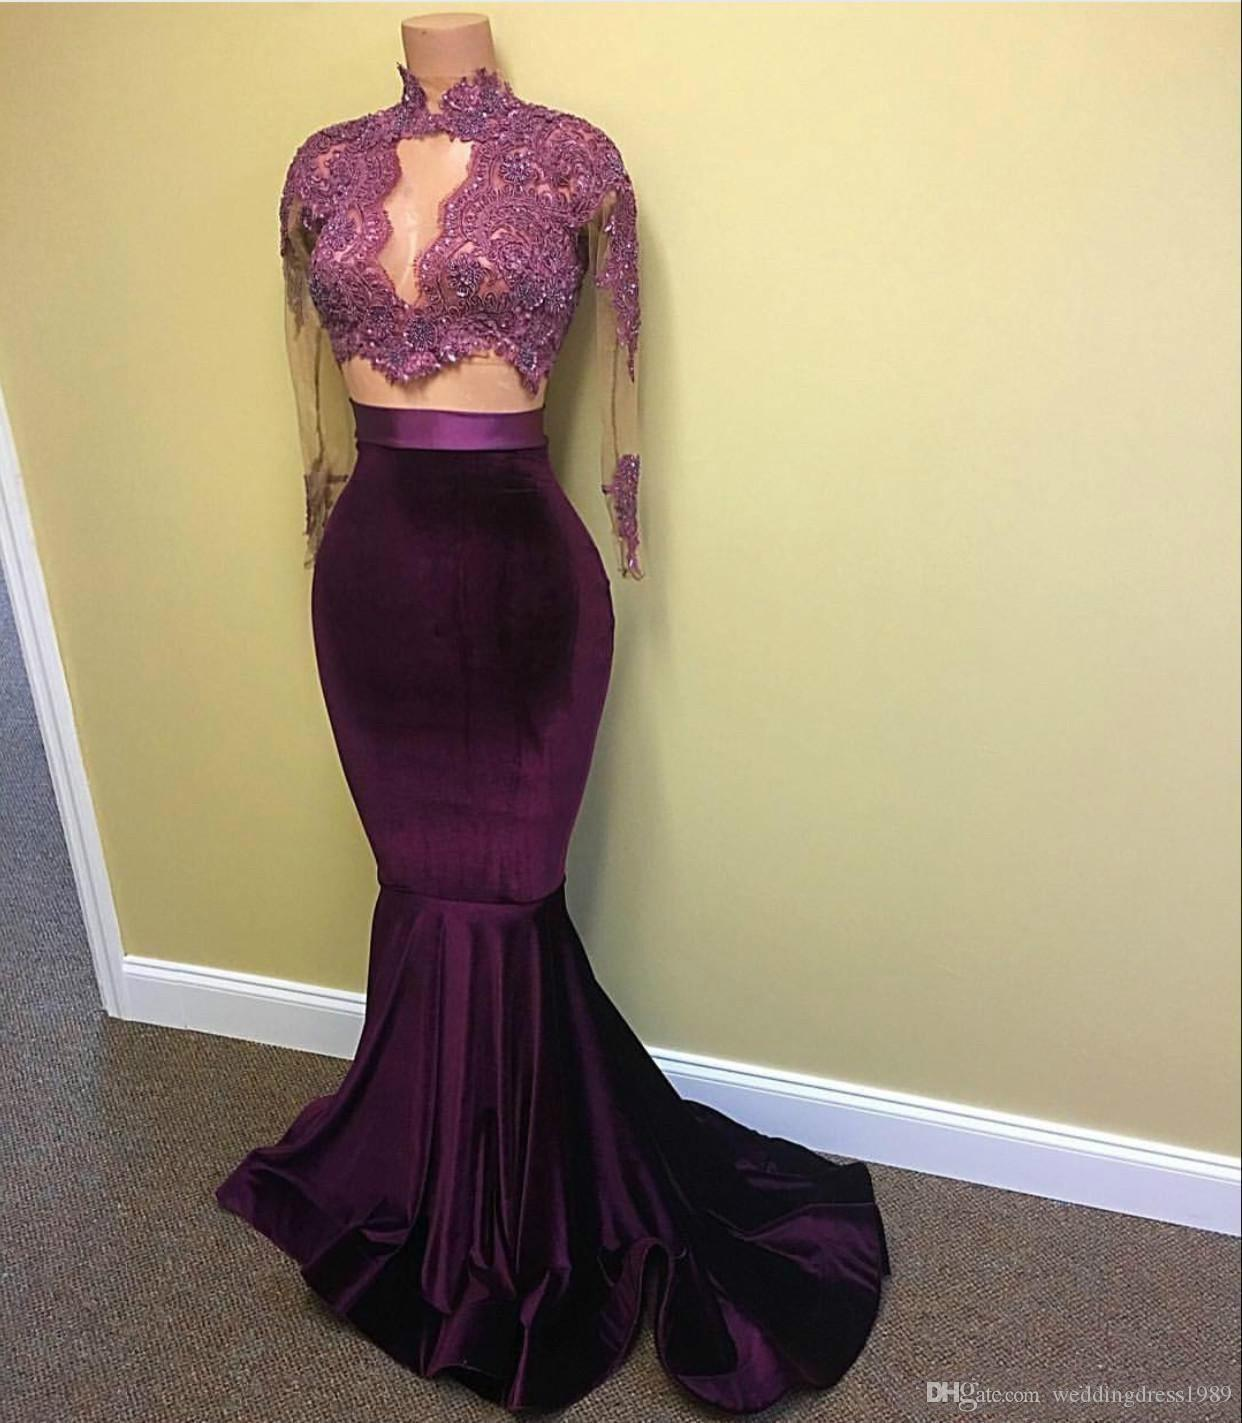 Perfect Velvet Two Pieces Mermaid Prom Dresses Purple Lace African Style Formal Long Party Sexy Evening Gowns Guest Wear Robe De Soiree